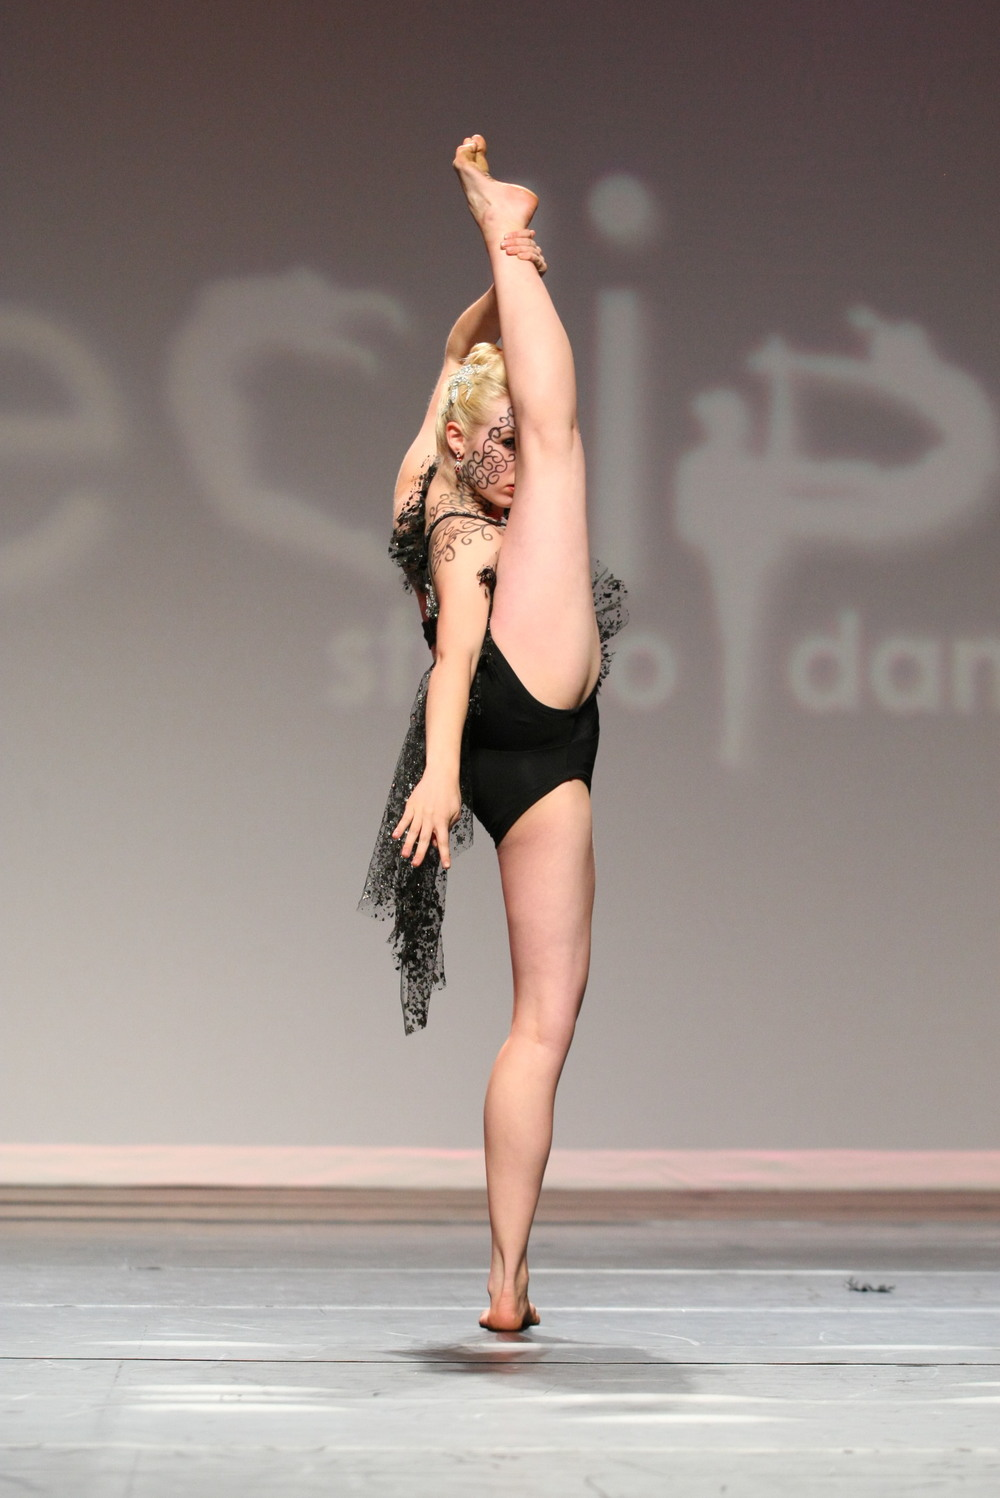 2012 - Alyssa Ness from Northland School of Dance